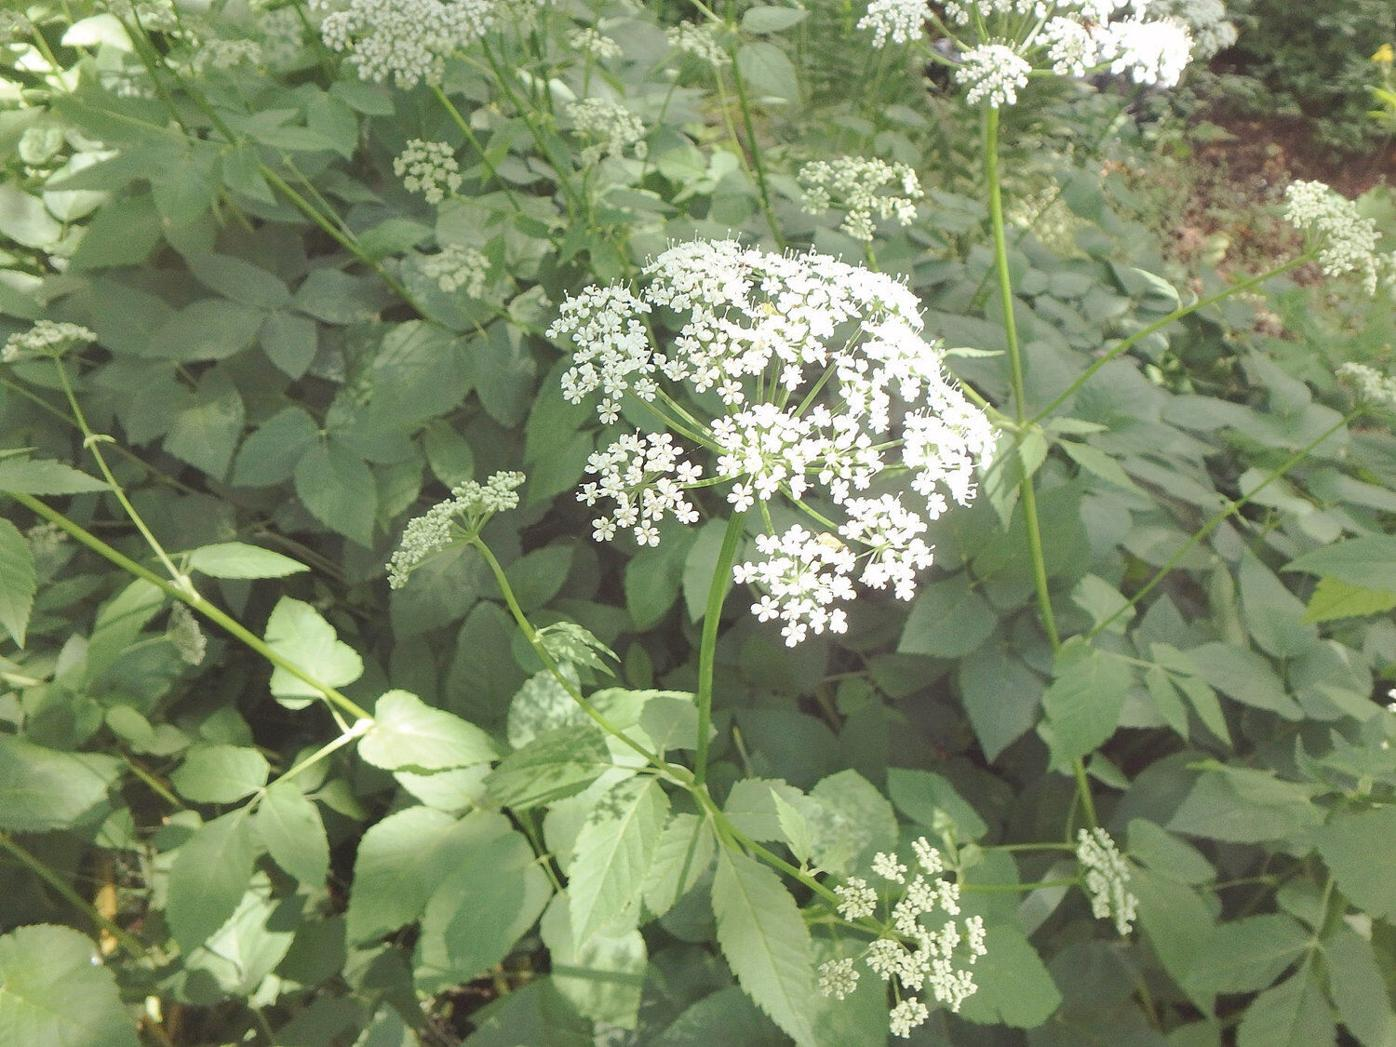 Henry Homeyer: Weeds to worry about, and what to do about them